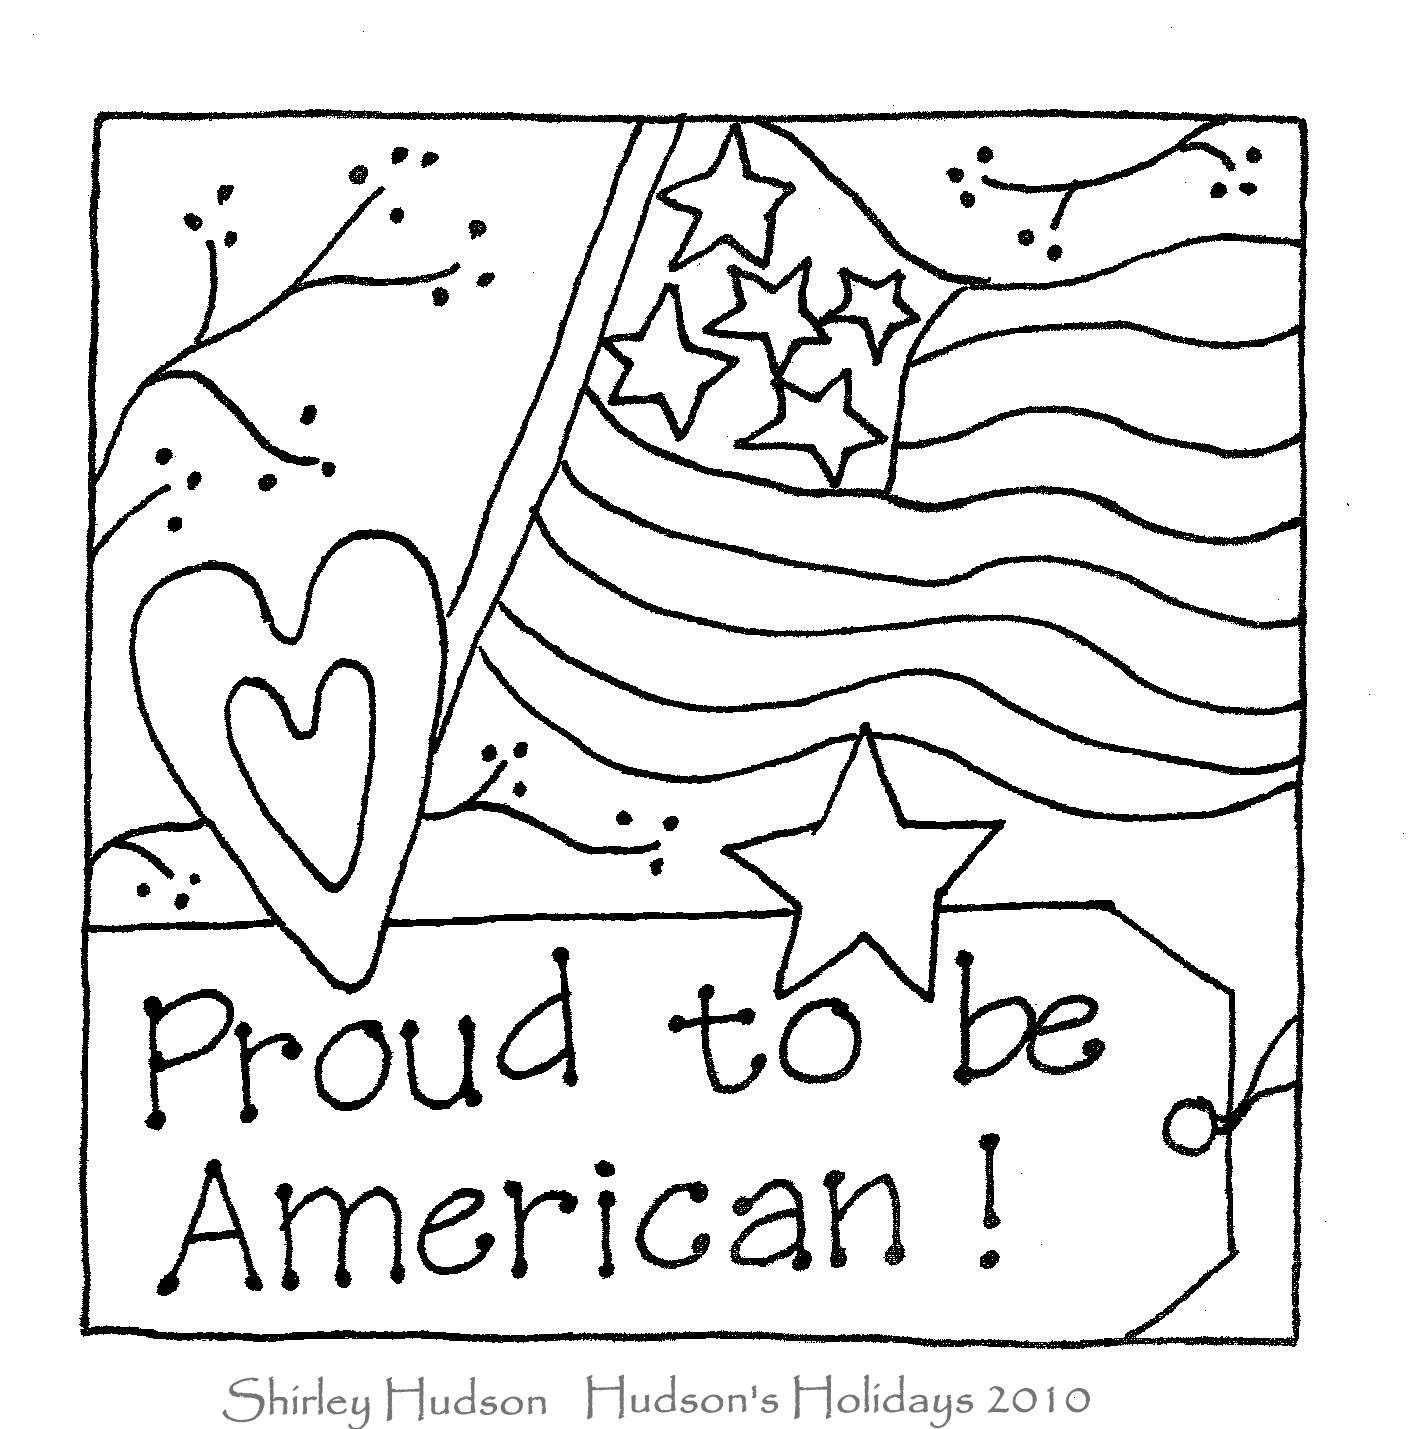 patriotic coloring pages - photo#18